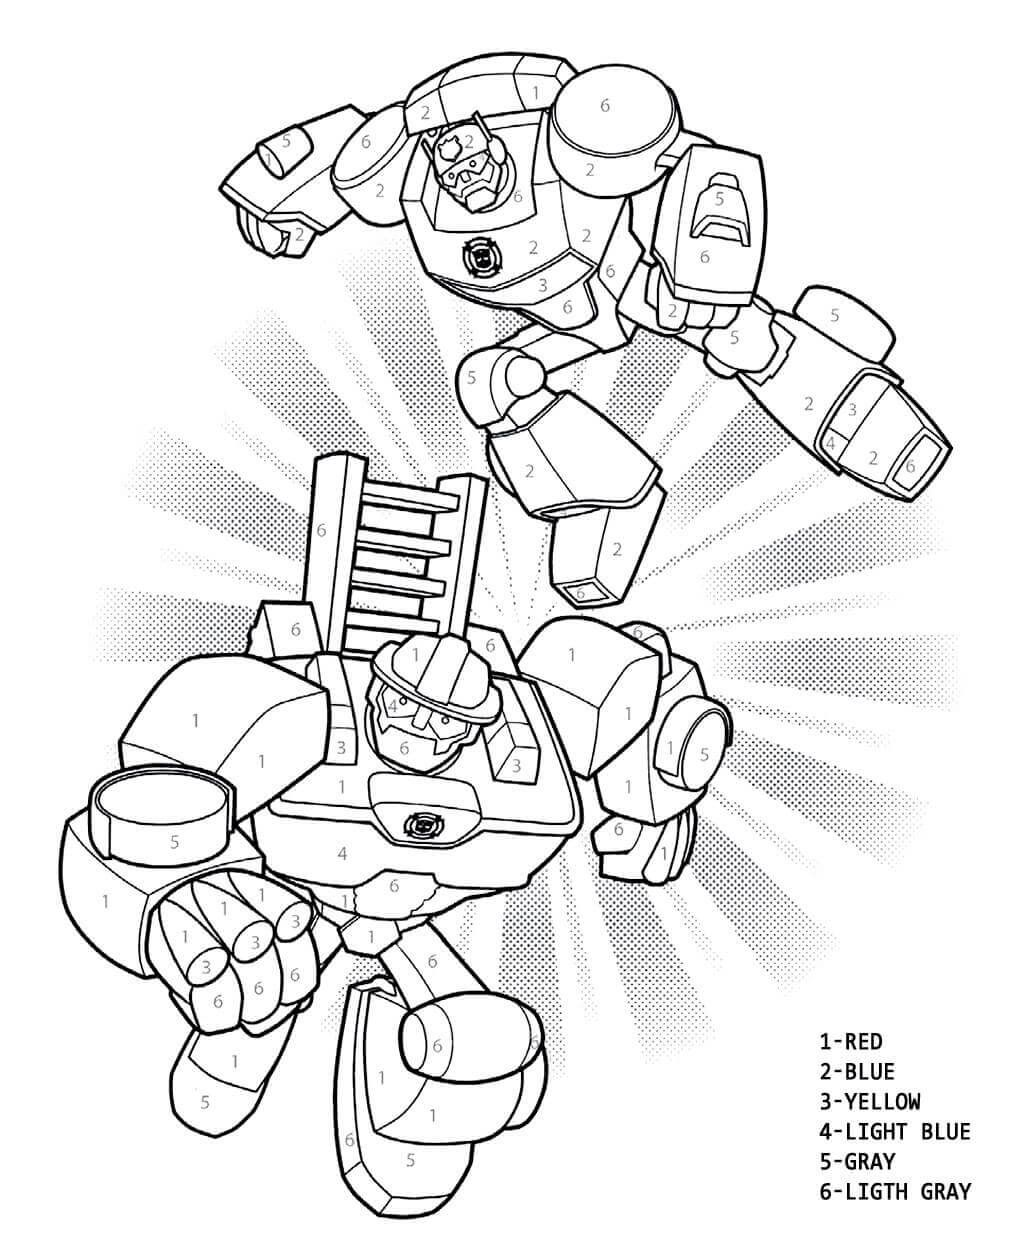 Transformers rescue bots color by numbers activity sheet rescue